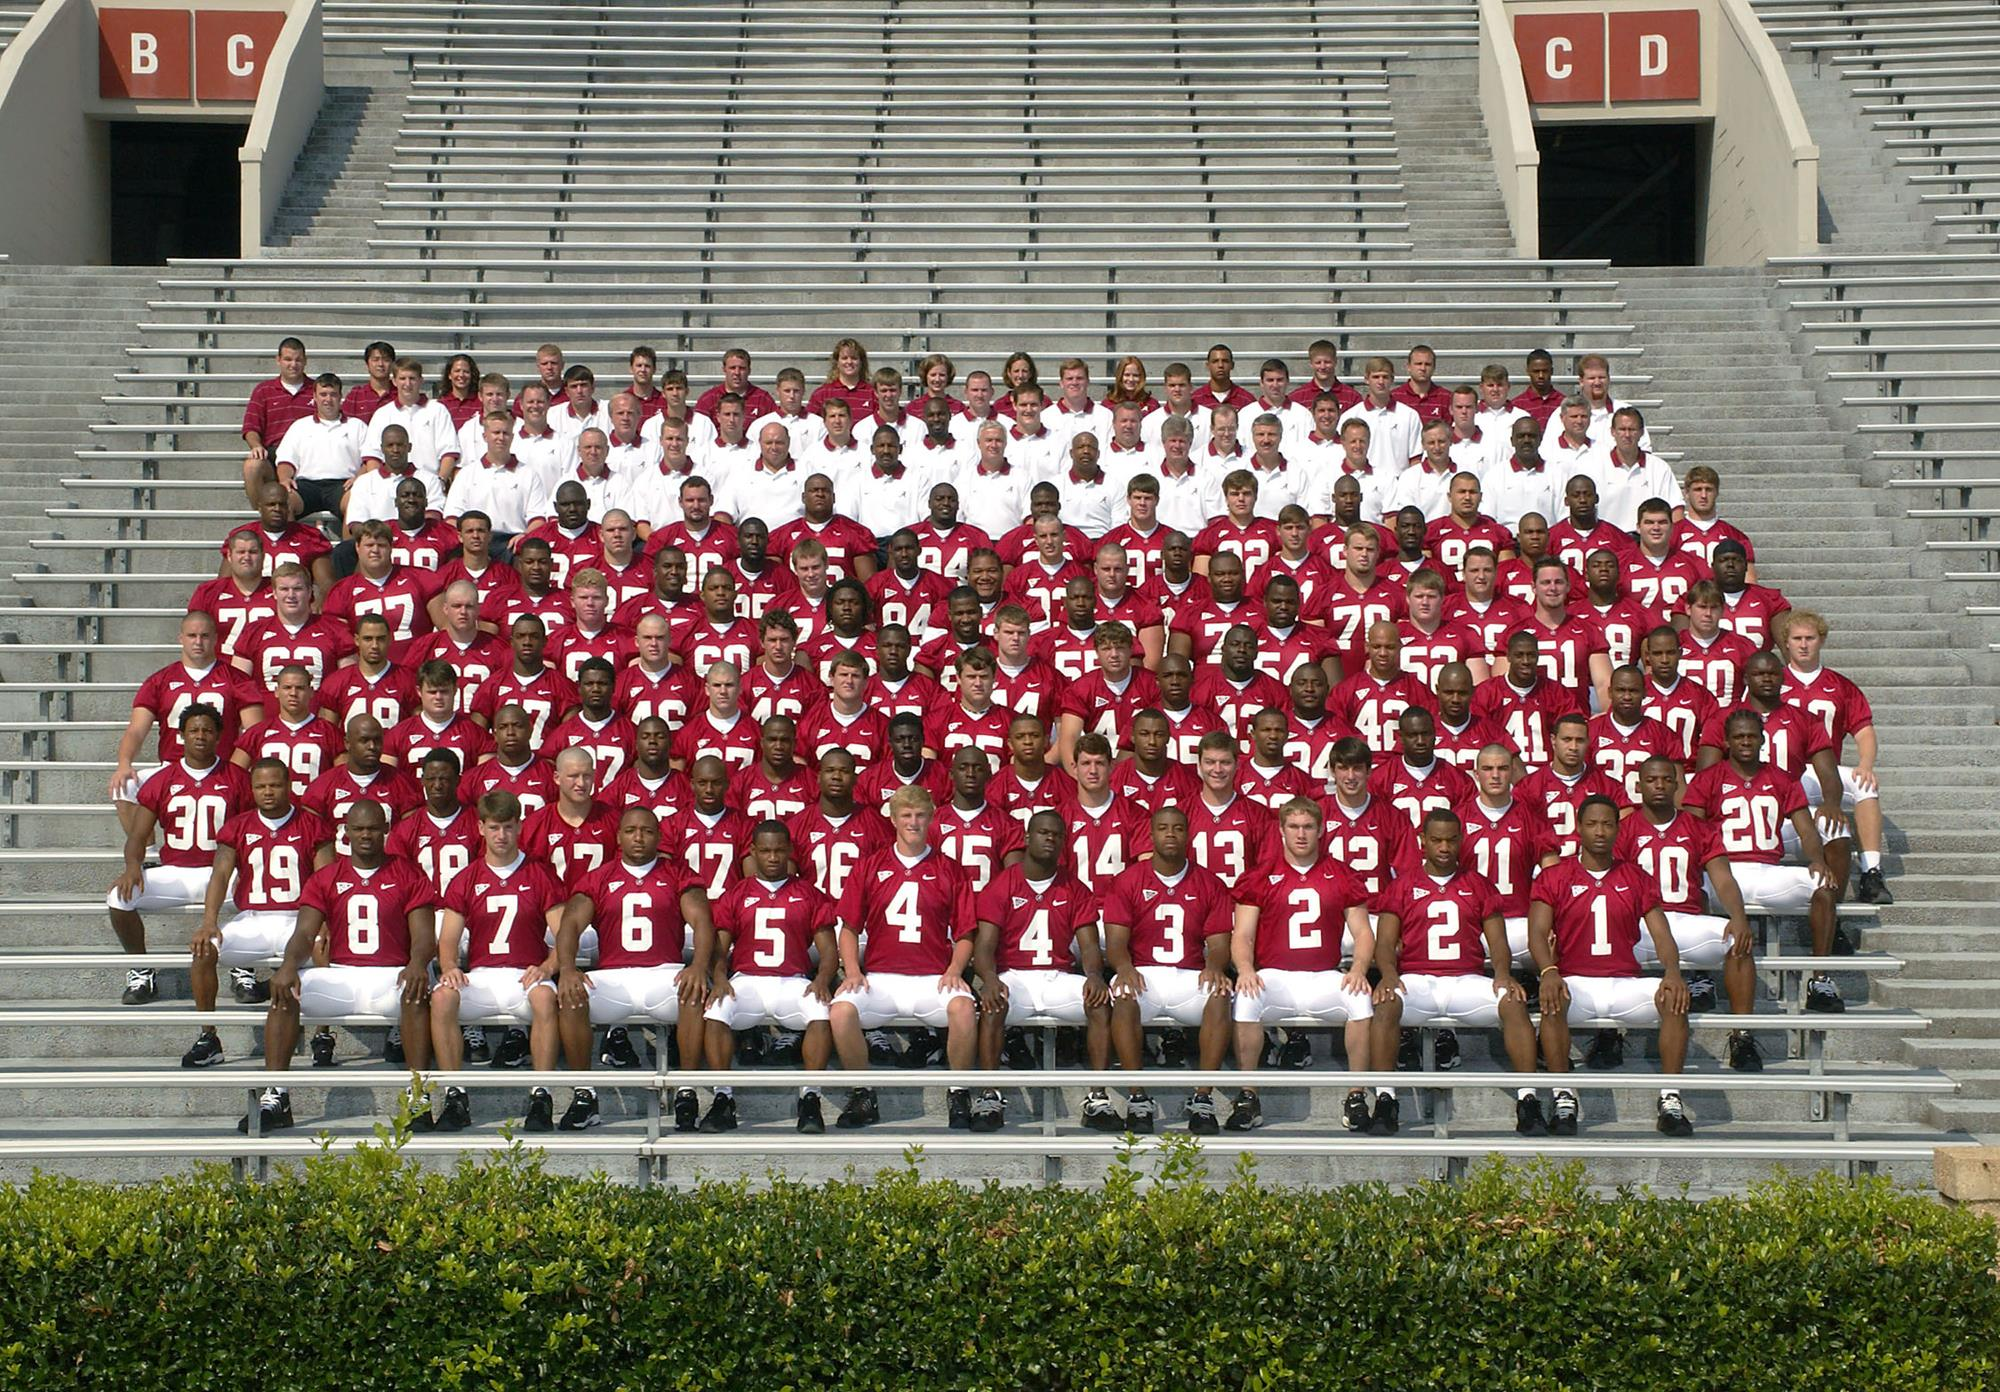 Alabama Football Roster 2002 Football Archives University Of Alabama Athletics